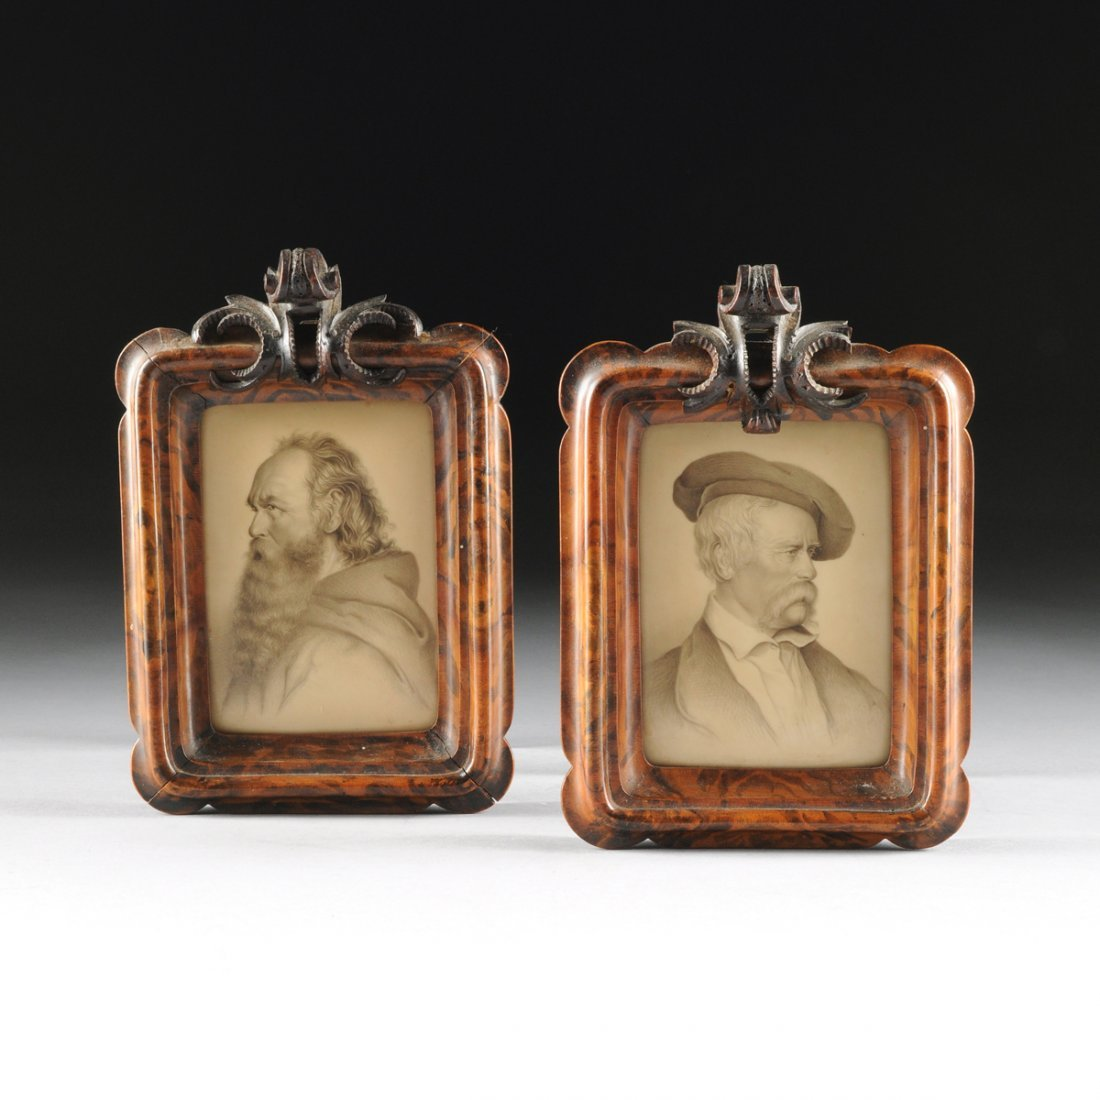 PAIR OF FINE PENCIL DRAWN PORTRAITS OF 19TH CENTURY